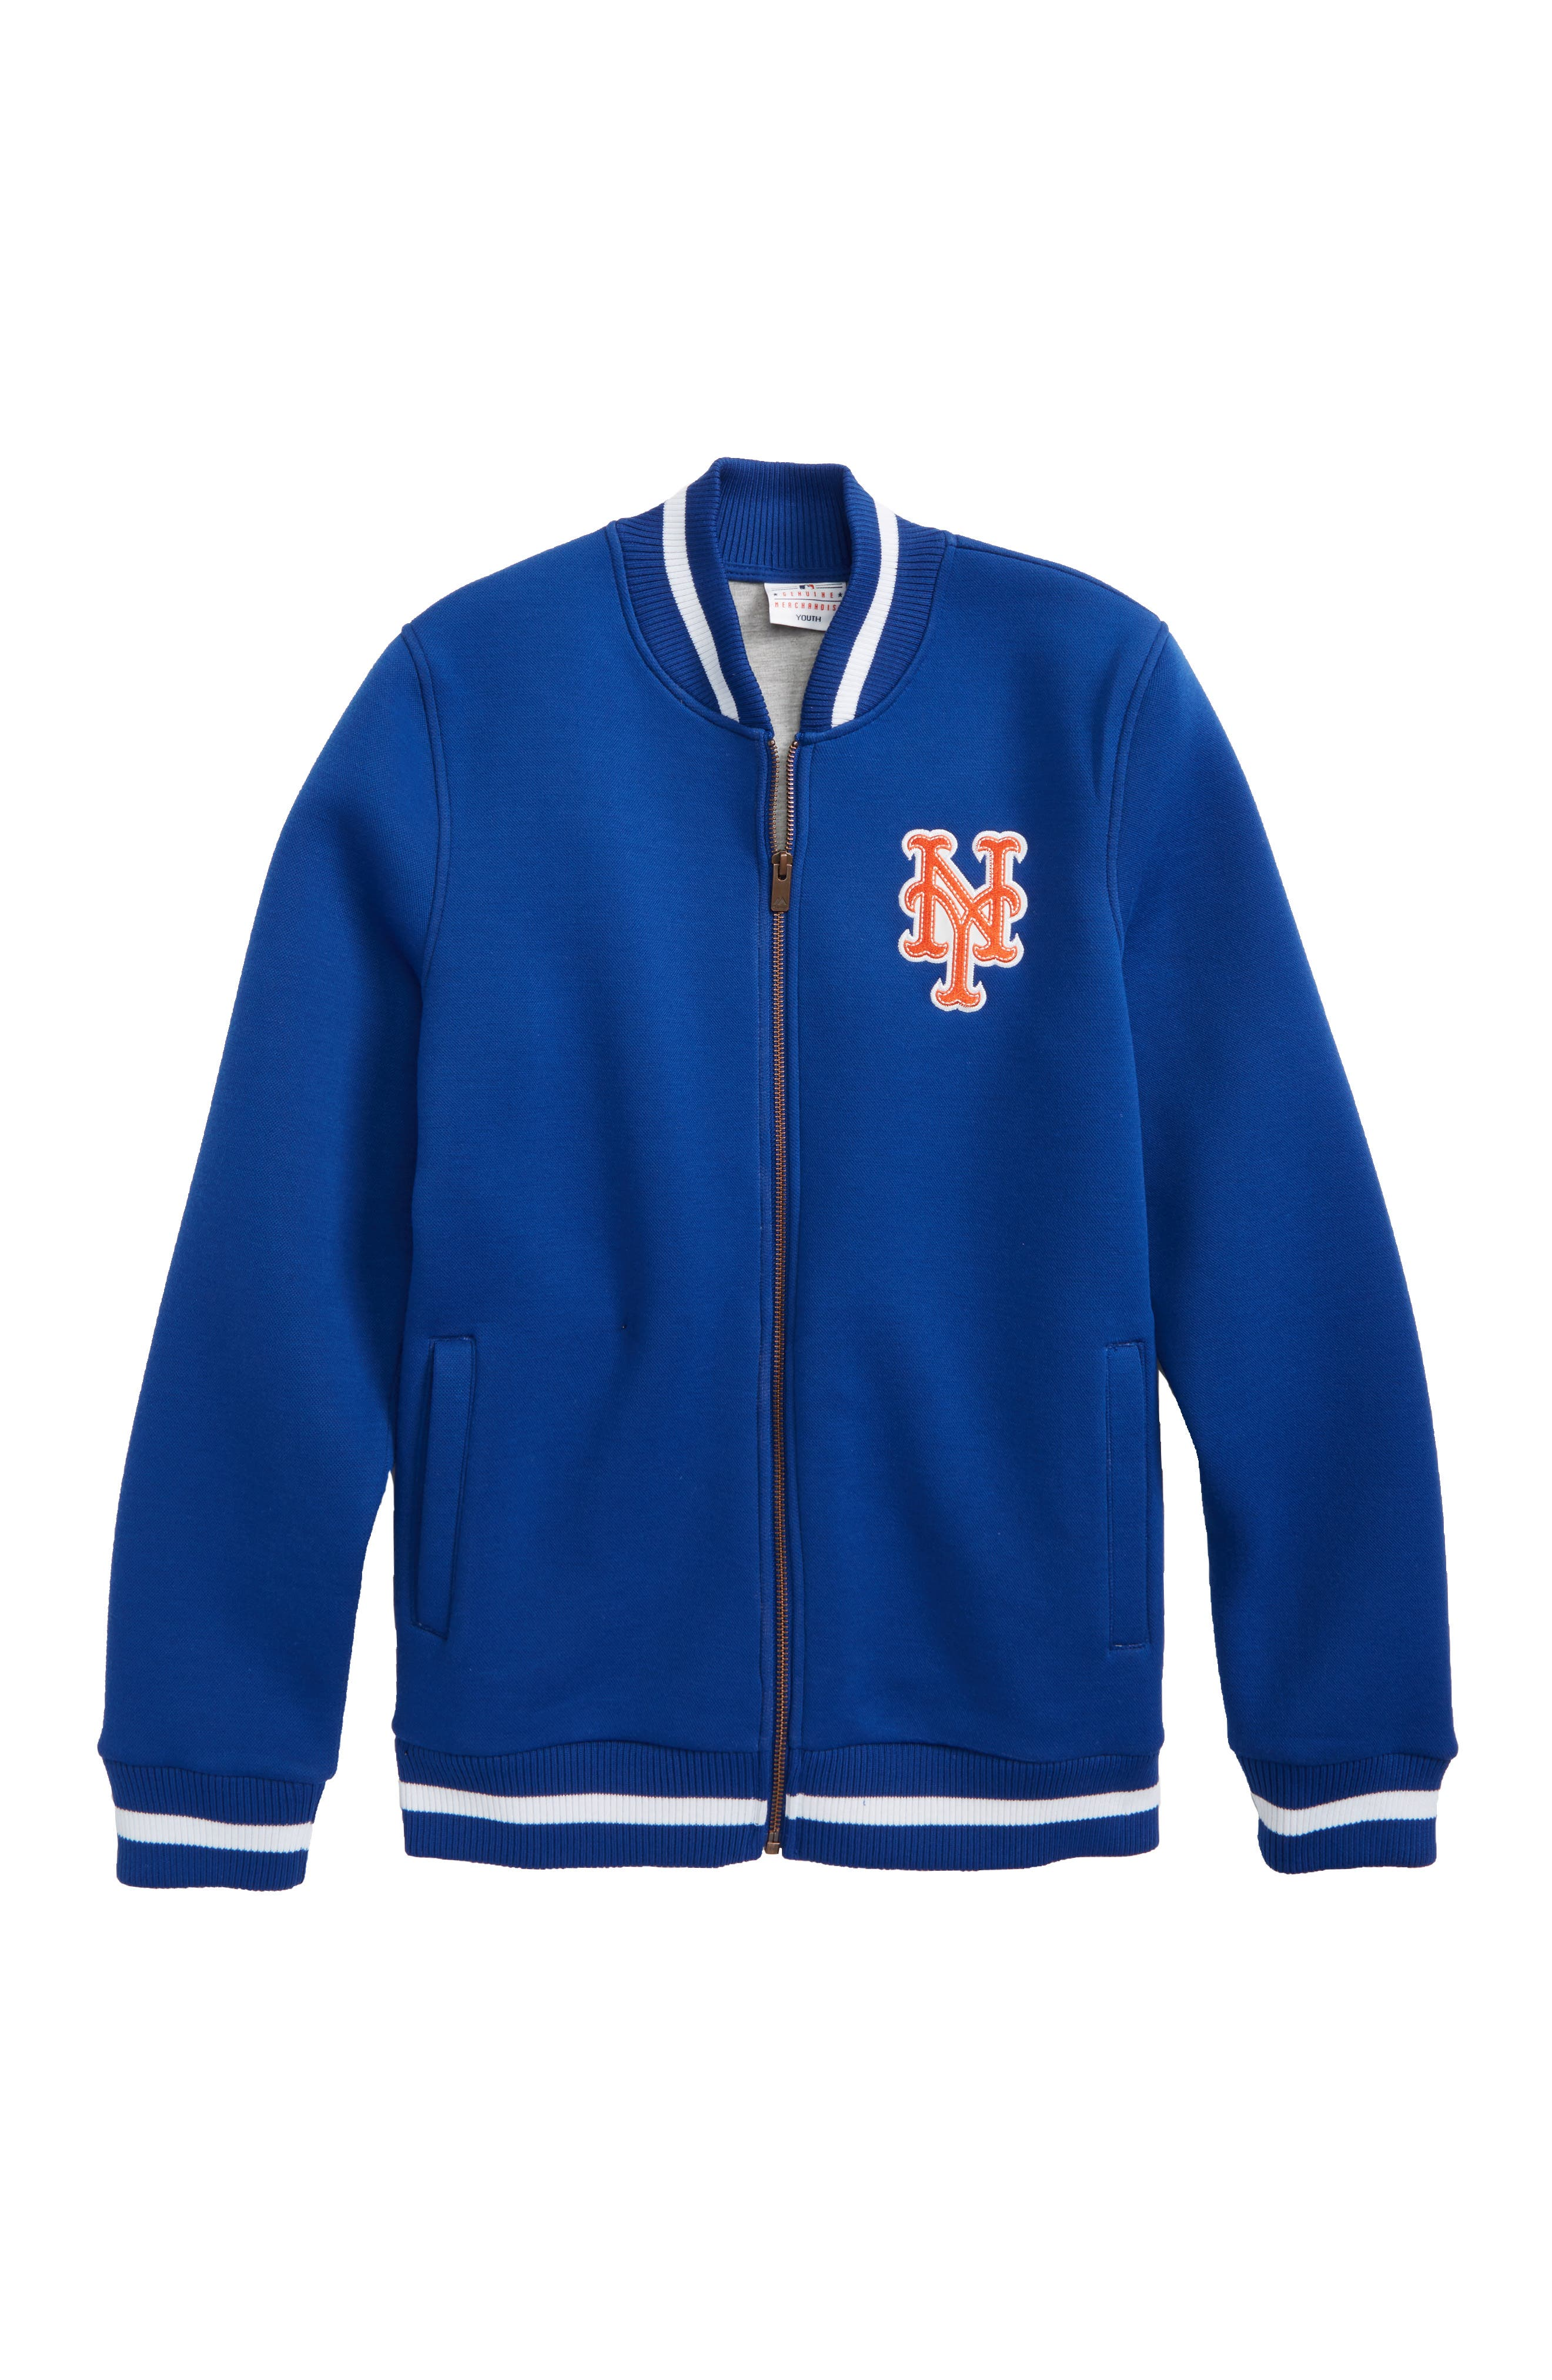 Alternate Image 1 Selected - Majestic MLB Classical New York Mets Knit Varsity Jacket